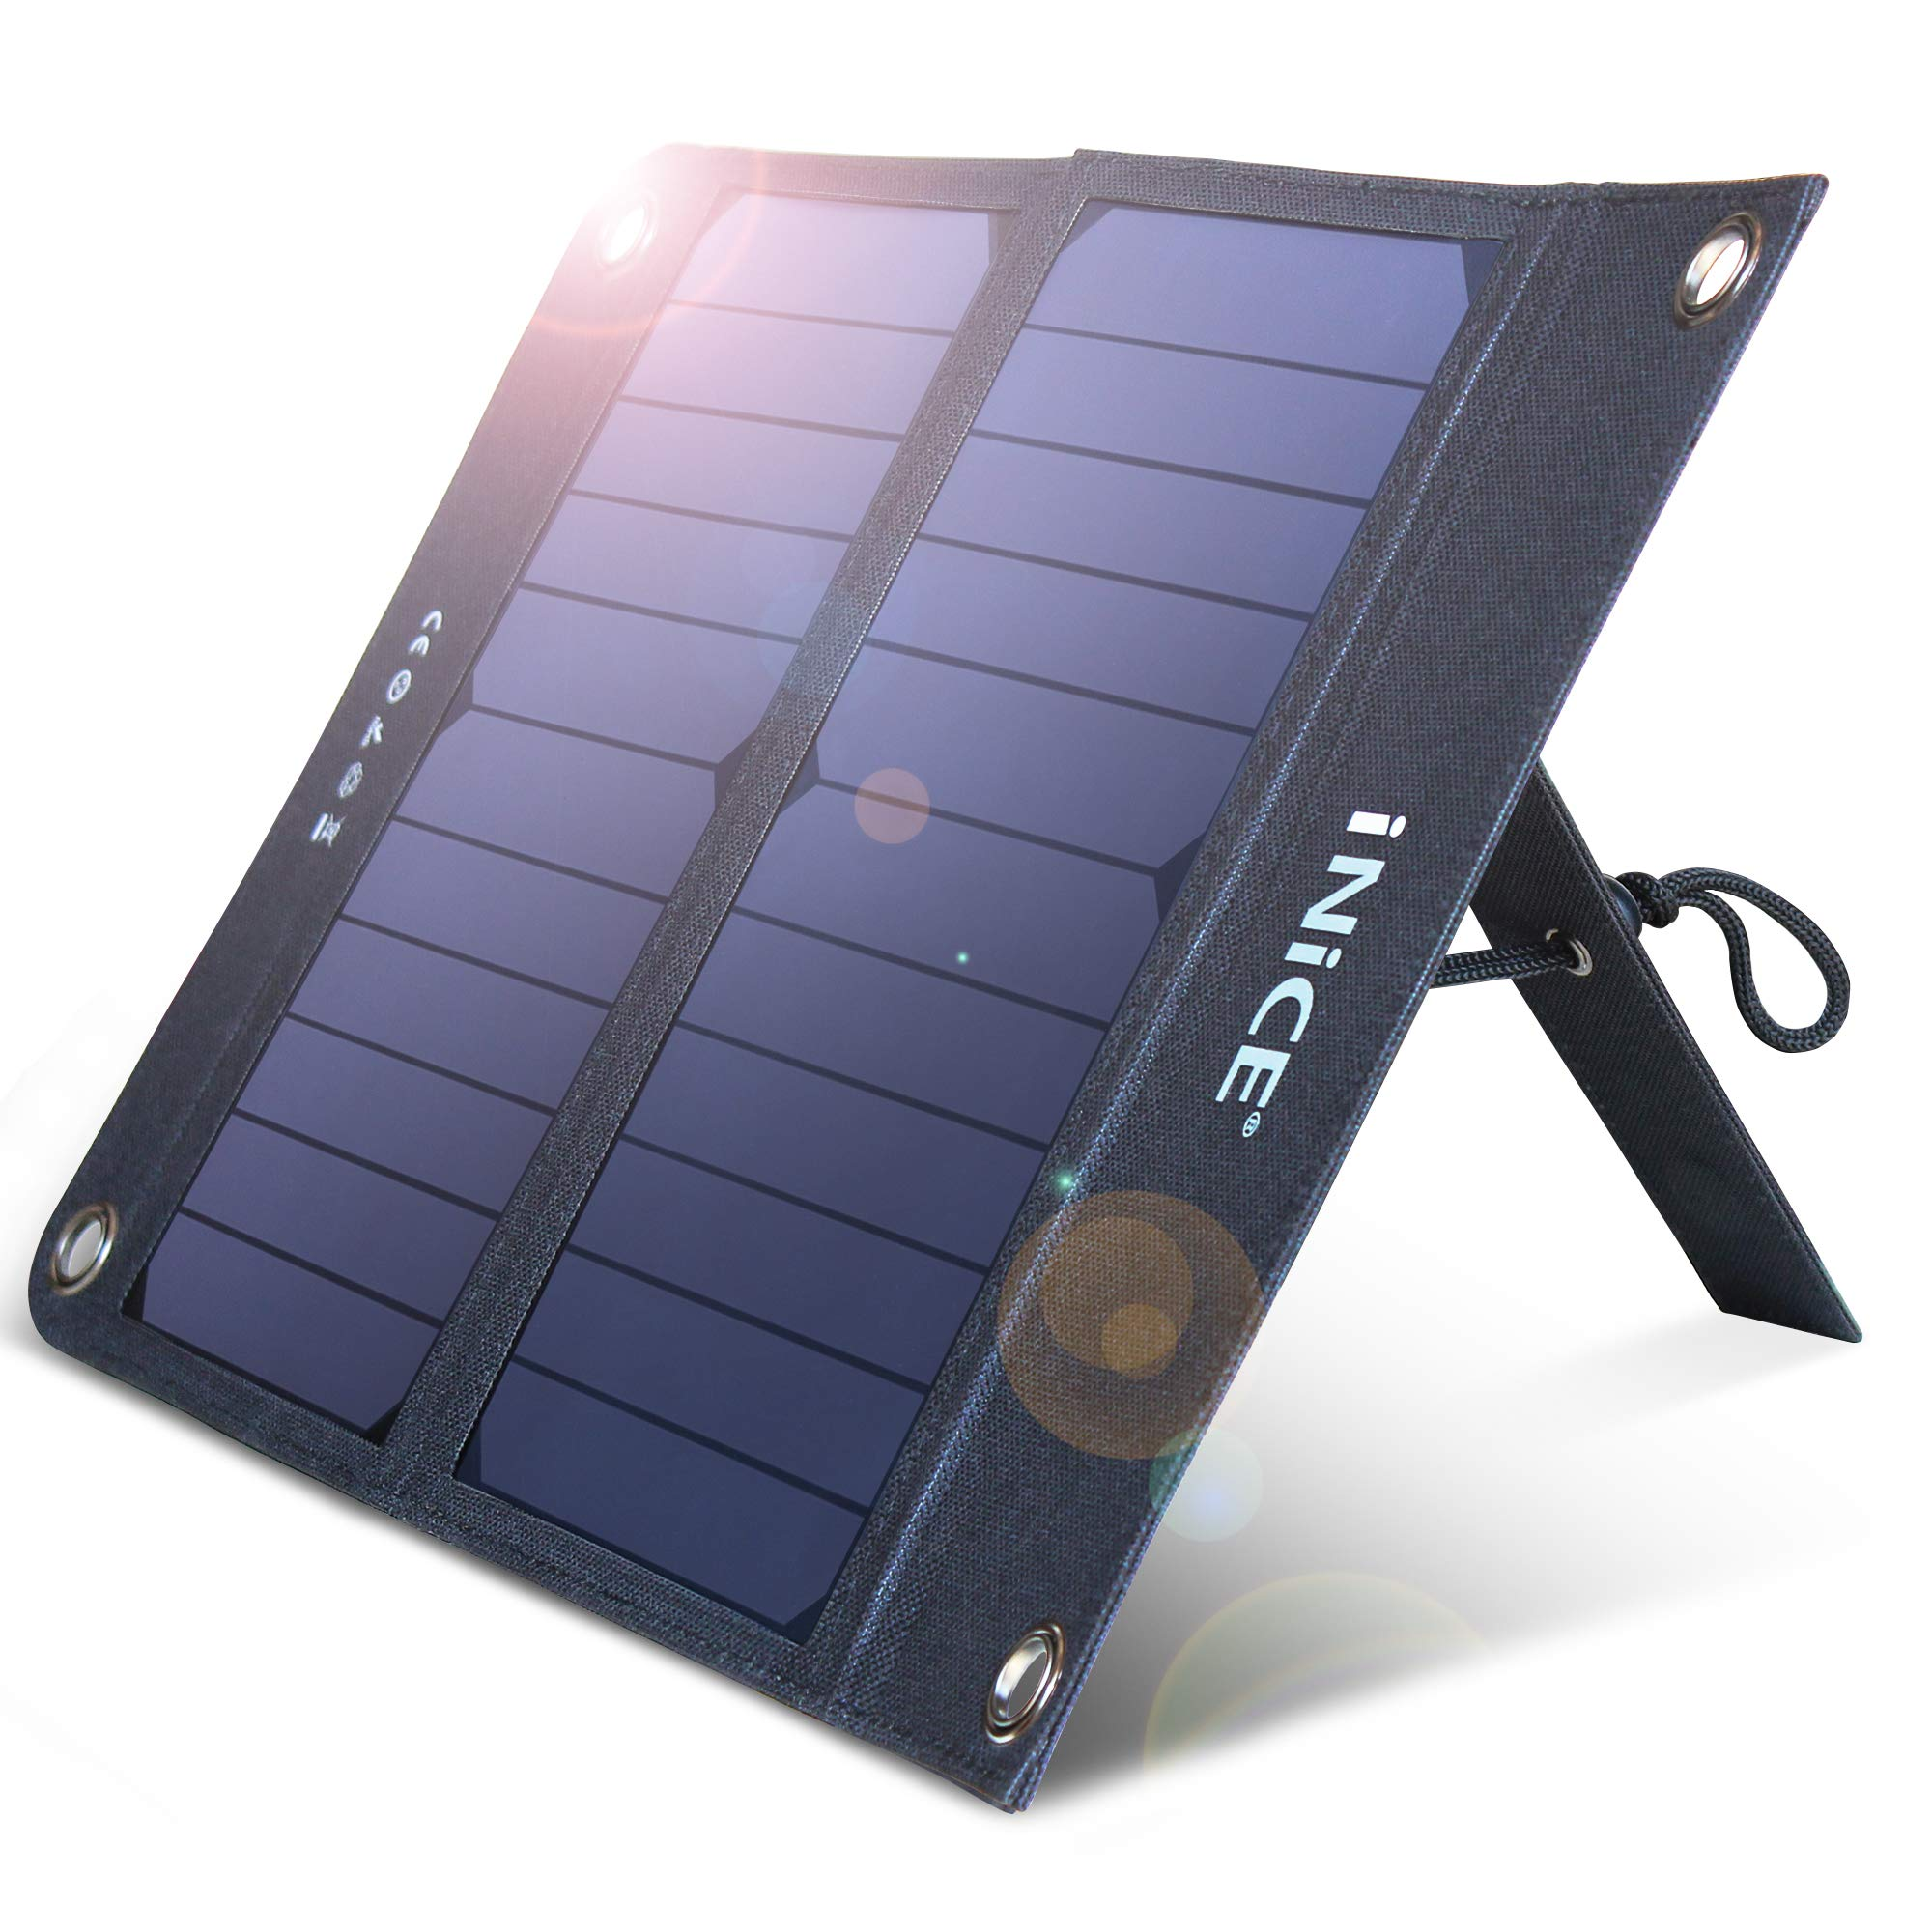 10000mAh Solar Charger Portable Solar Power Bank for Cell Phone with Dual USB 2.1A Outputs Waterproof External Battery Pack Chargers for iPhone Xs Max XR X 8 7 Plus, iPad, Galaxy S9 S8 Note 8 by Enther